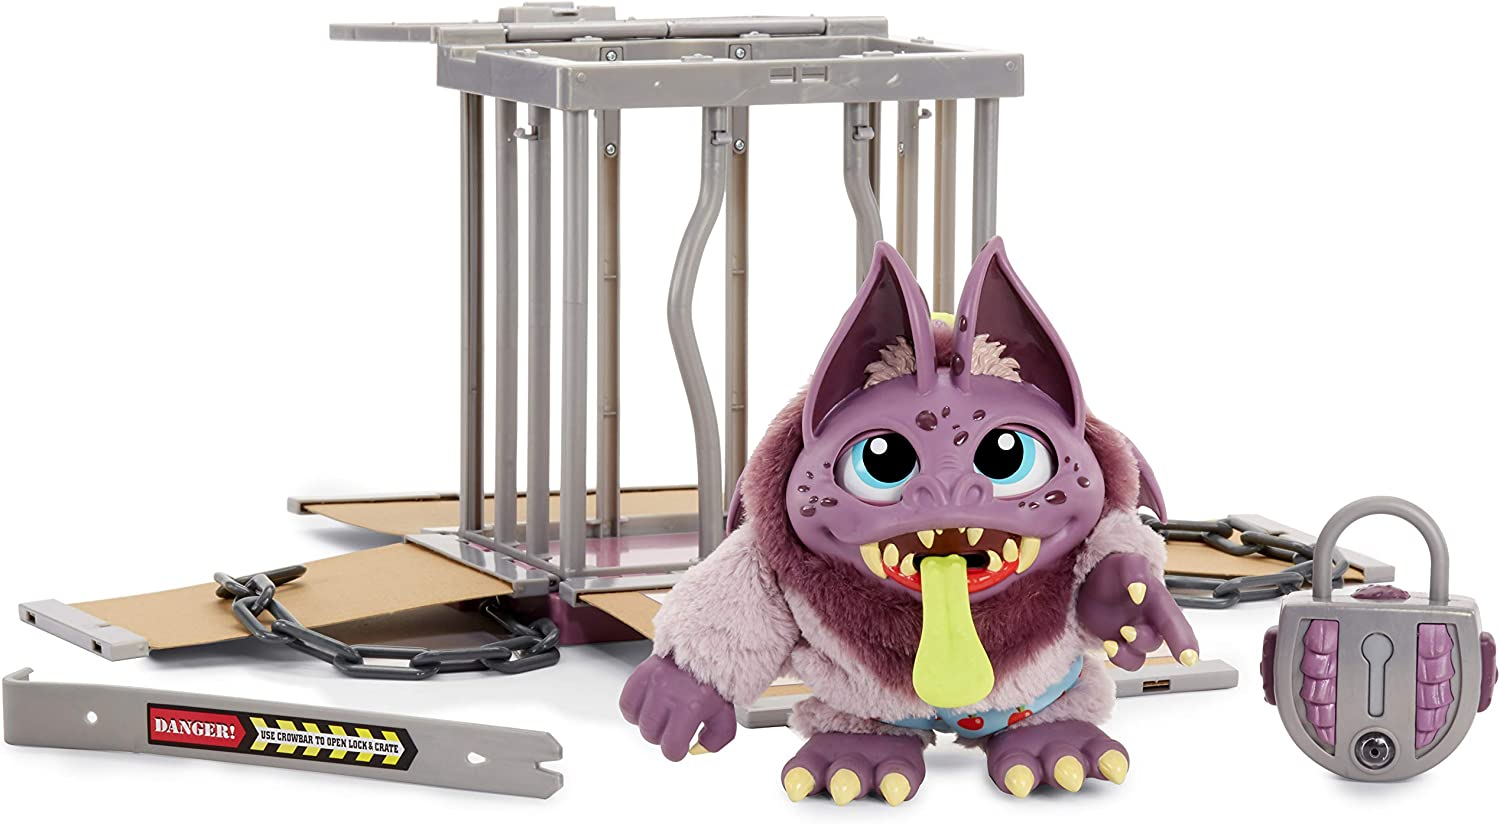 lowest price Crate Creatures Surprise Big Guano Blowout Popular shop is the lowest price challenge Multicolor 553847